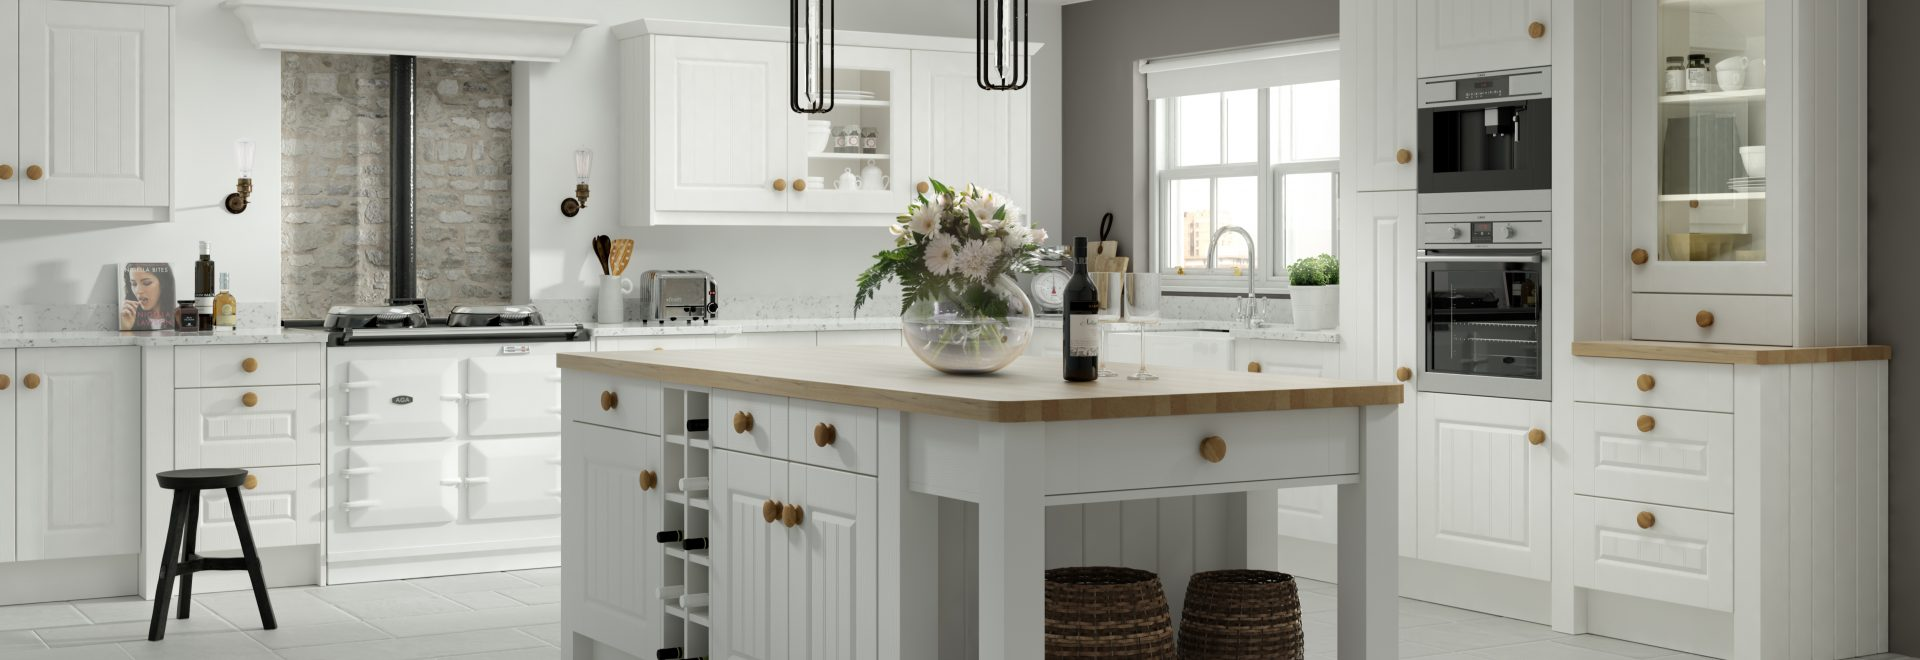 have doors pocket small for with kitchen and must stylish design door a homes